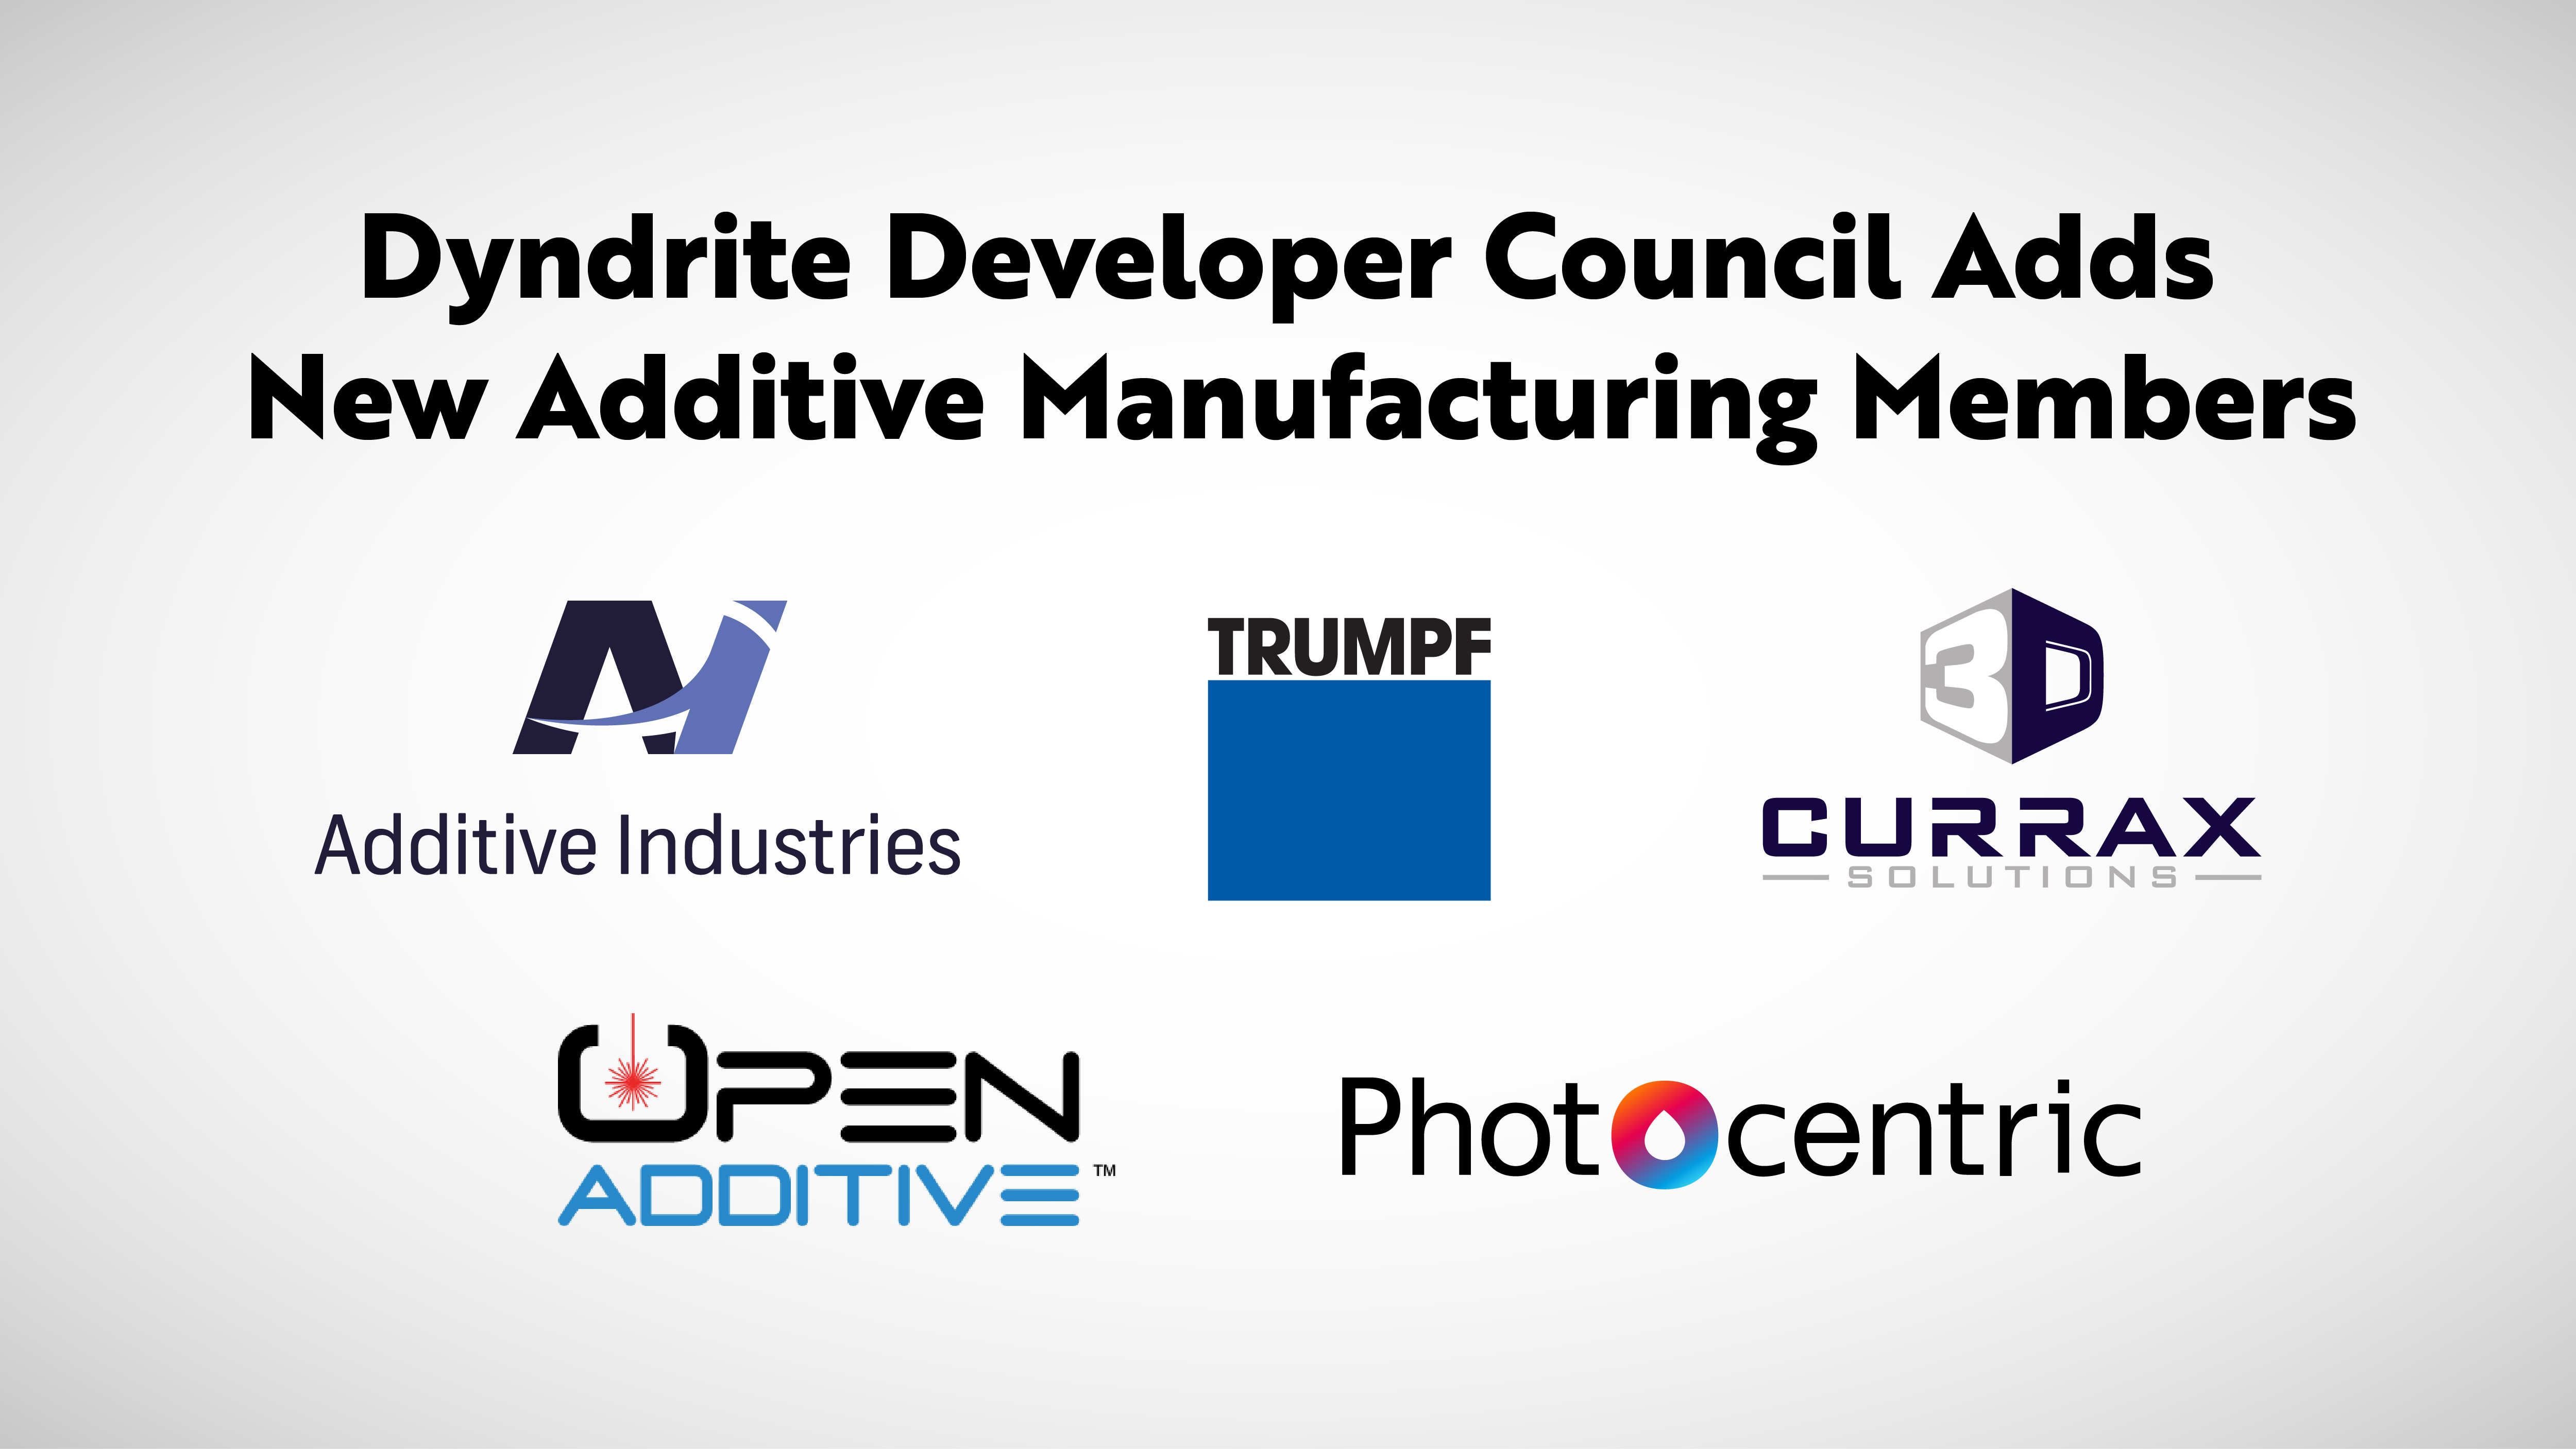 Dyndrite Developer Council Adds New Additive Manufacturing Vendors, Additive Industries, Currax, Open Additive, Photocentric and TRUMPF